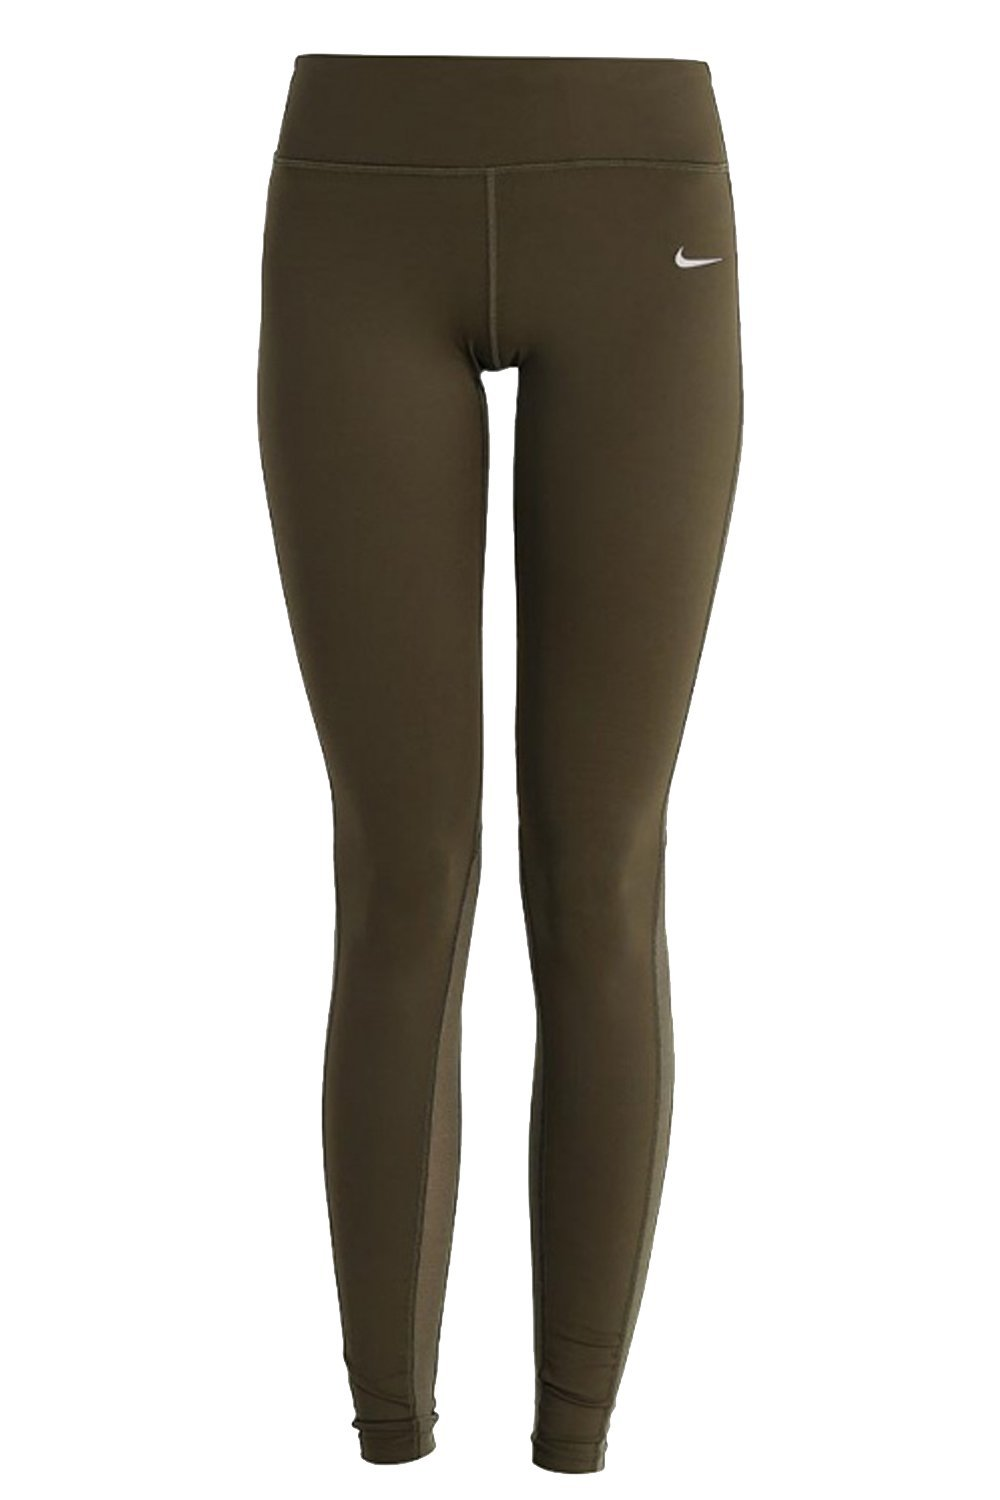 hot sale online fa166 2f9be Nike Women s Epic Lux Running Tights (X-Small) (Olive Green)